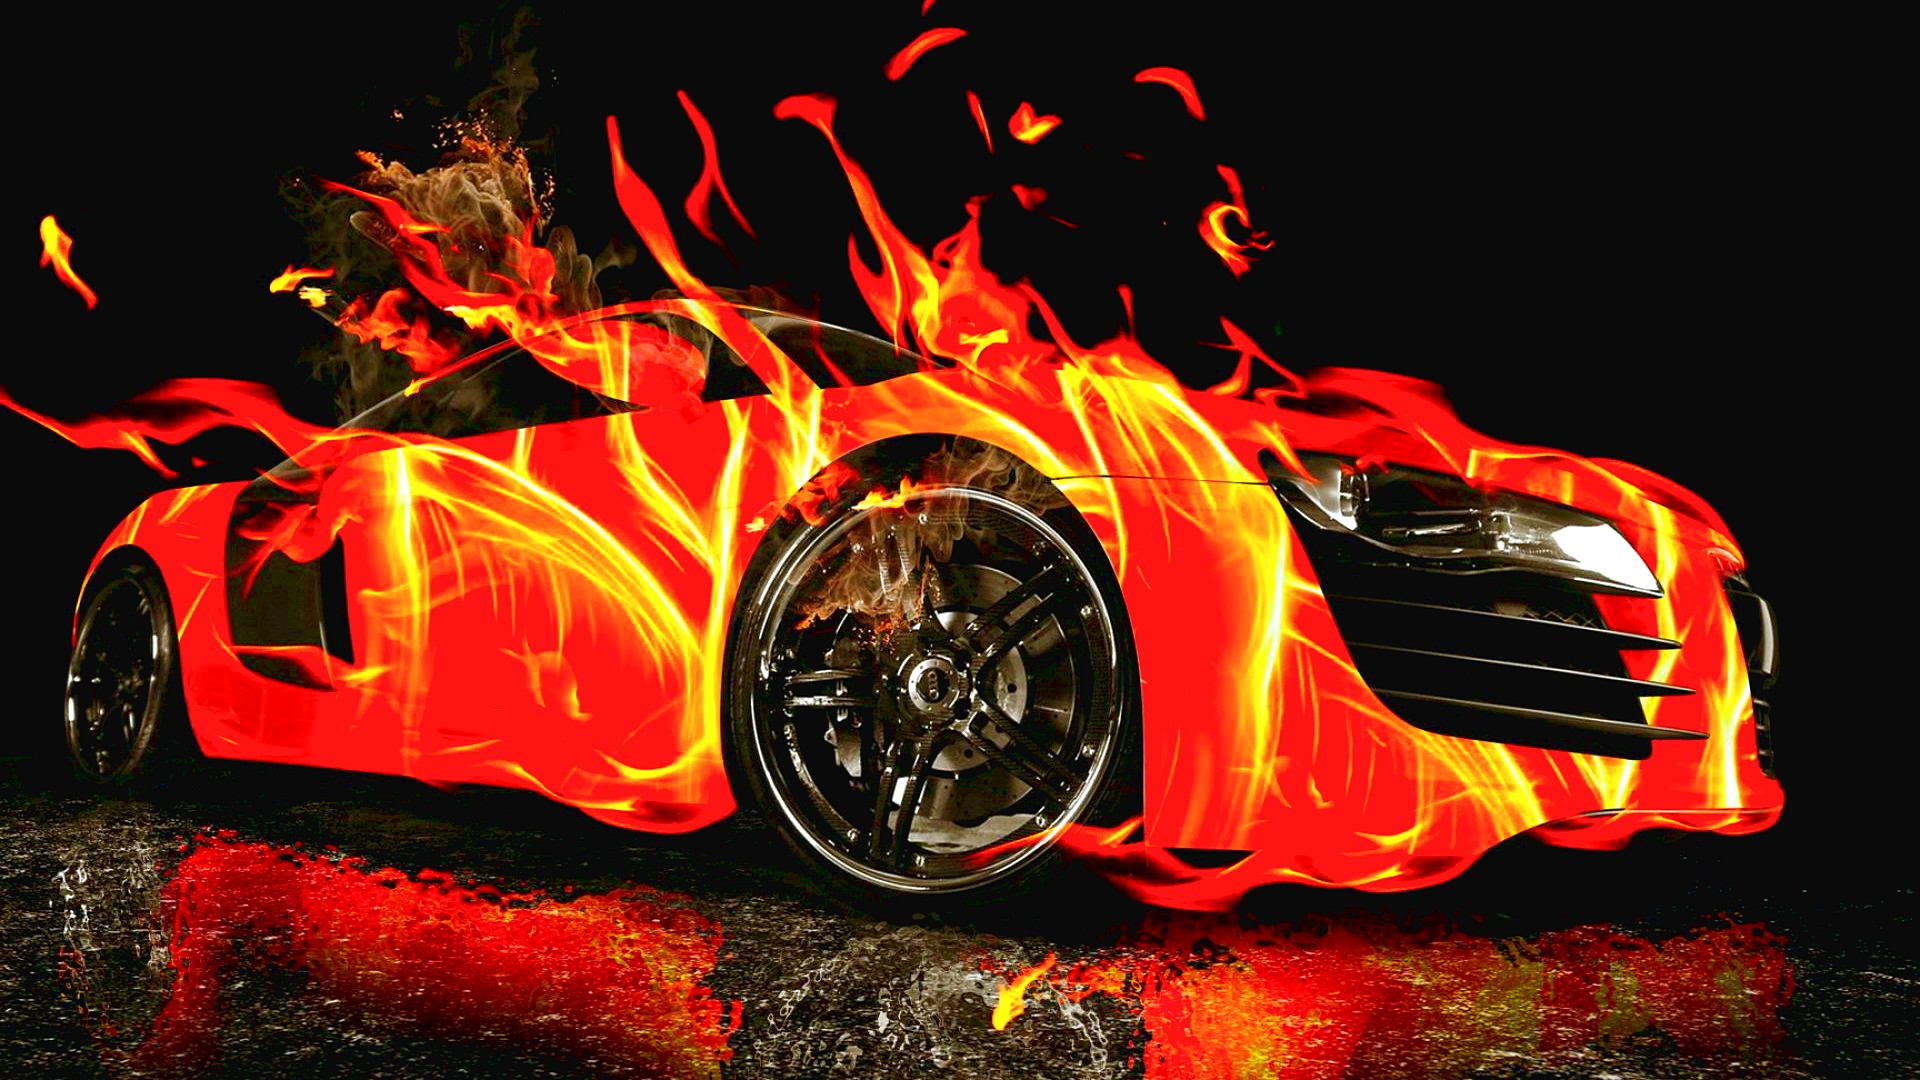 Cool Images of a Car in Fire 2084.15 Kb